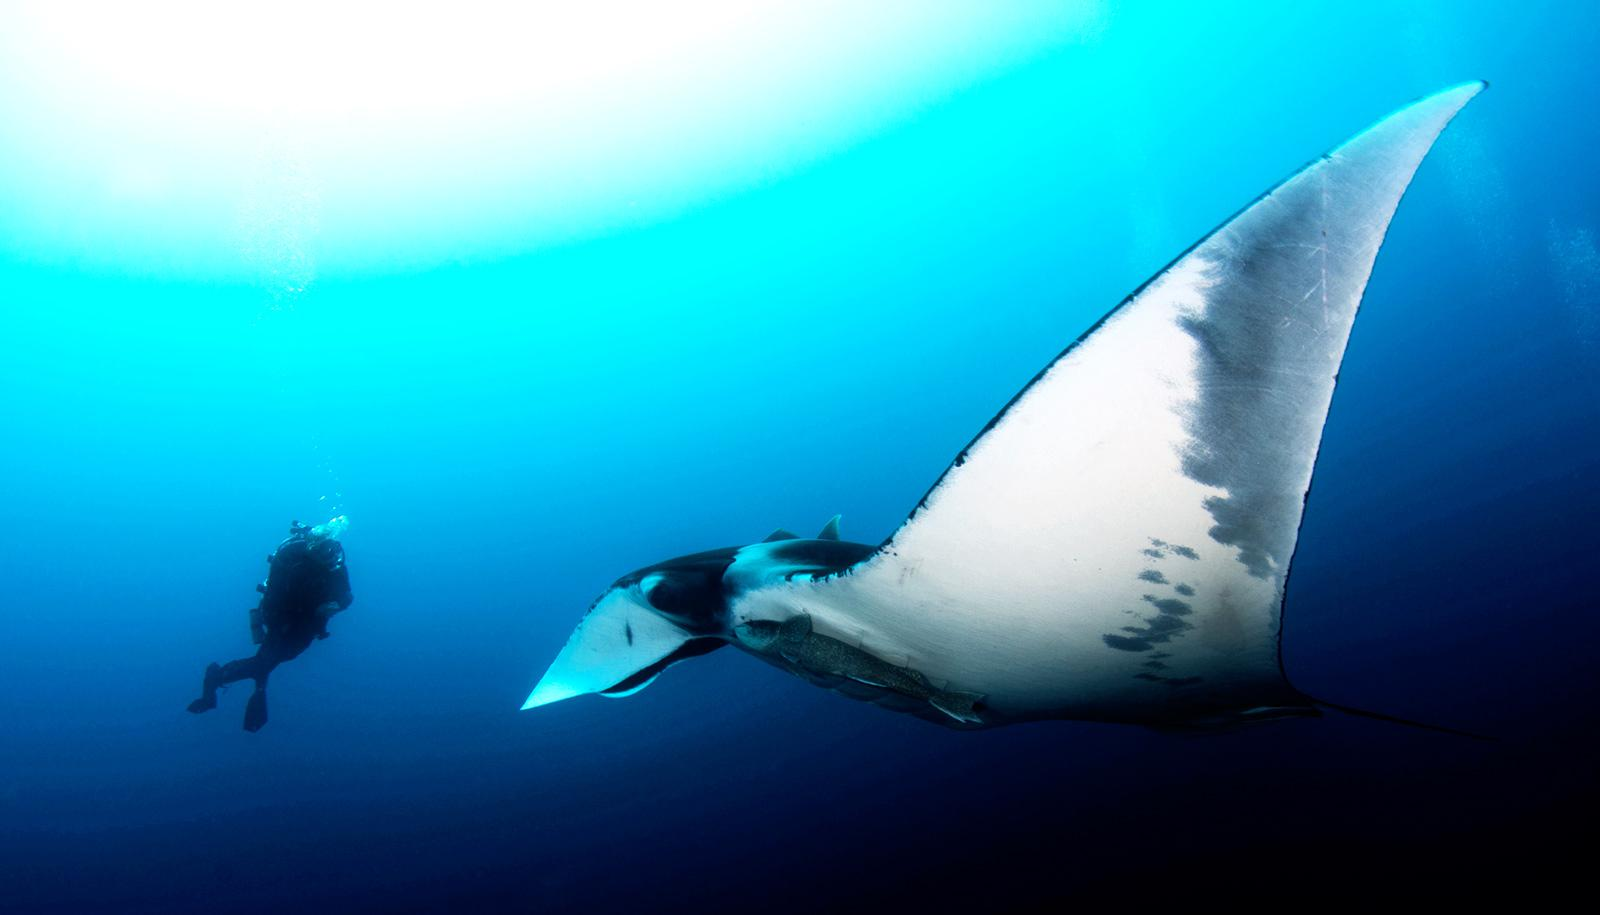 diver and giant manta ray - giant devil ray